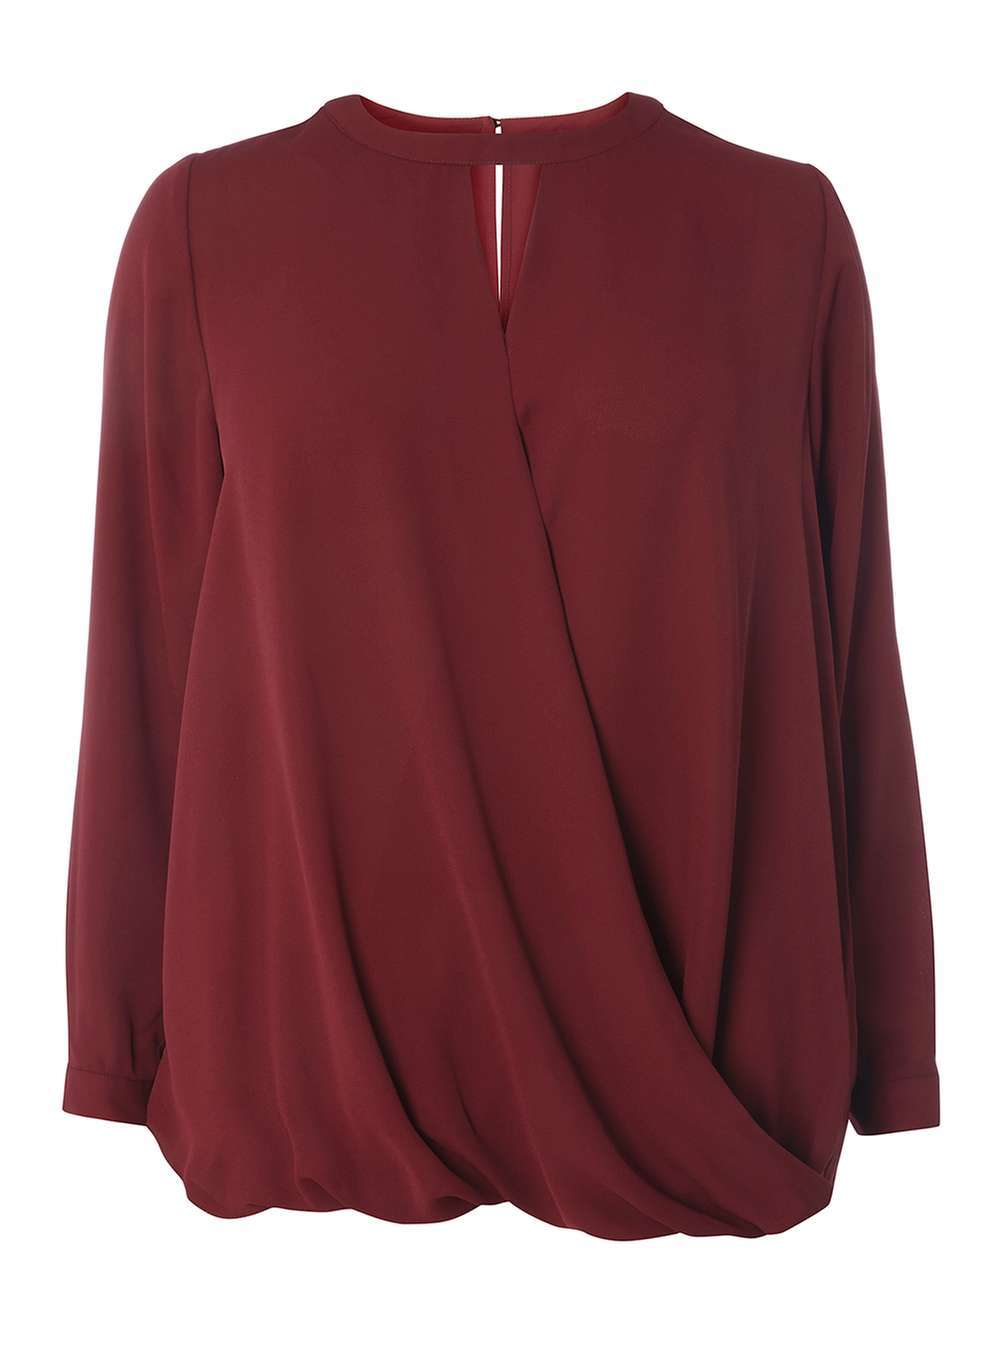 Womens Dp Curve Plus Size Berry Keyhole Wrap Top Red - pattern: plain; style: blouse; predominant colour: burgundy; occasions: evening; length: standard; neckline: peep hole neckline; fibres: polyester/polyamide - 100%; fit: loose; sleeve length: long sleeve; sleeve style: standard; texture group: sheer fabrics/chiffon/organza etc.; pattern type: fabric; season: a/w 2016; wardrobe: event